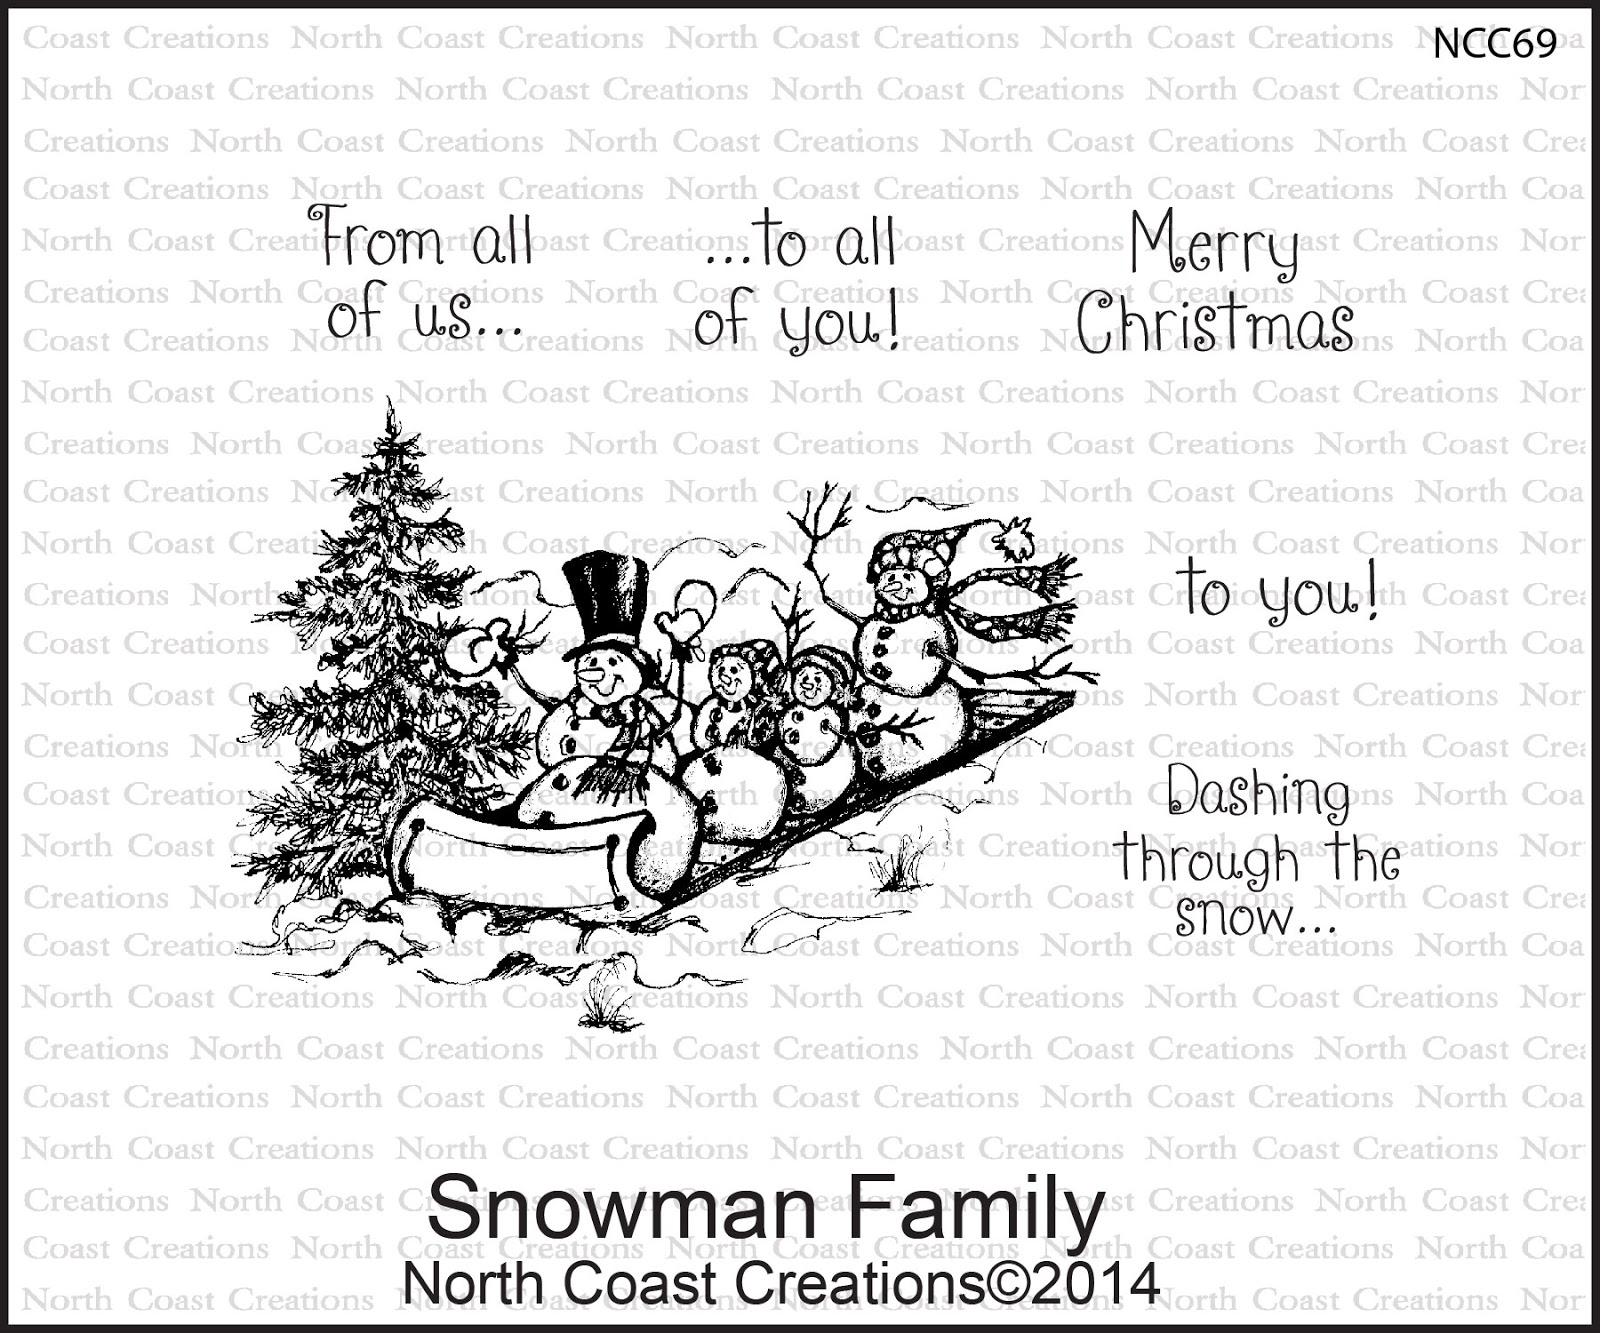 Stamps - North Coast Creations Snowman Familiy